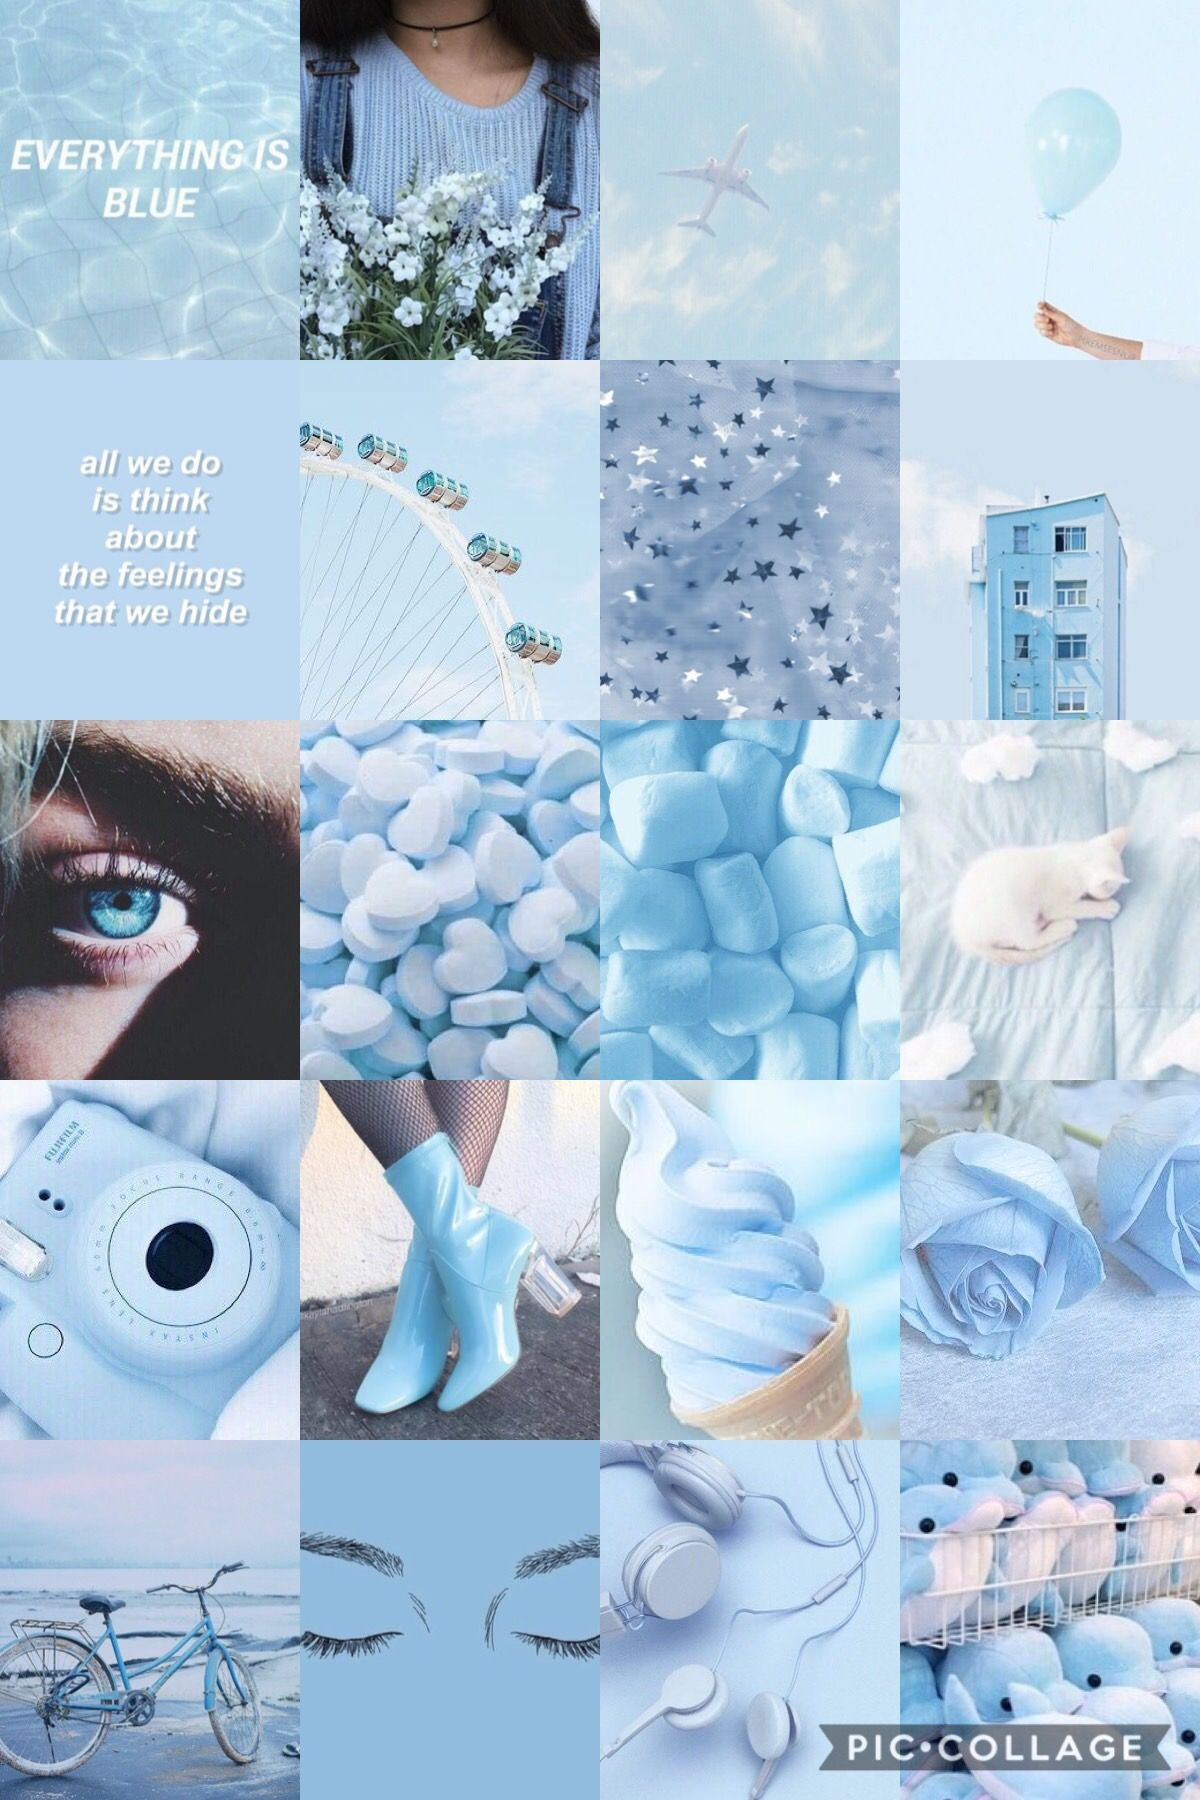 Blue Aesthetic Collage Wallpaper : aesthetic, collage, wallpaper, Aesthetic, Background, Collage, Wallpaper